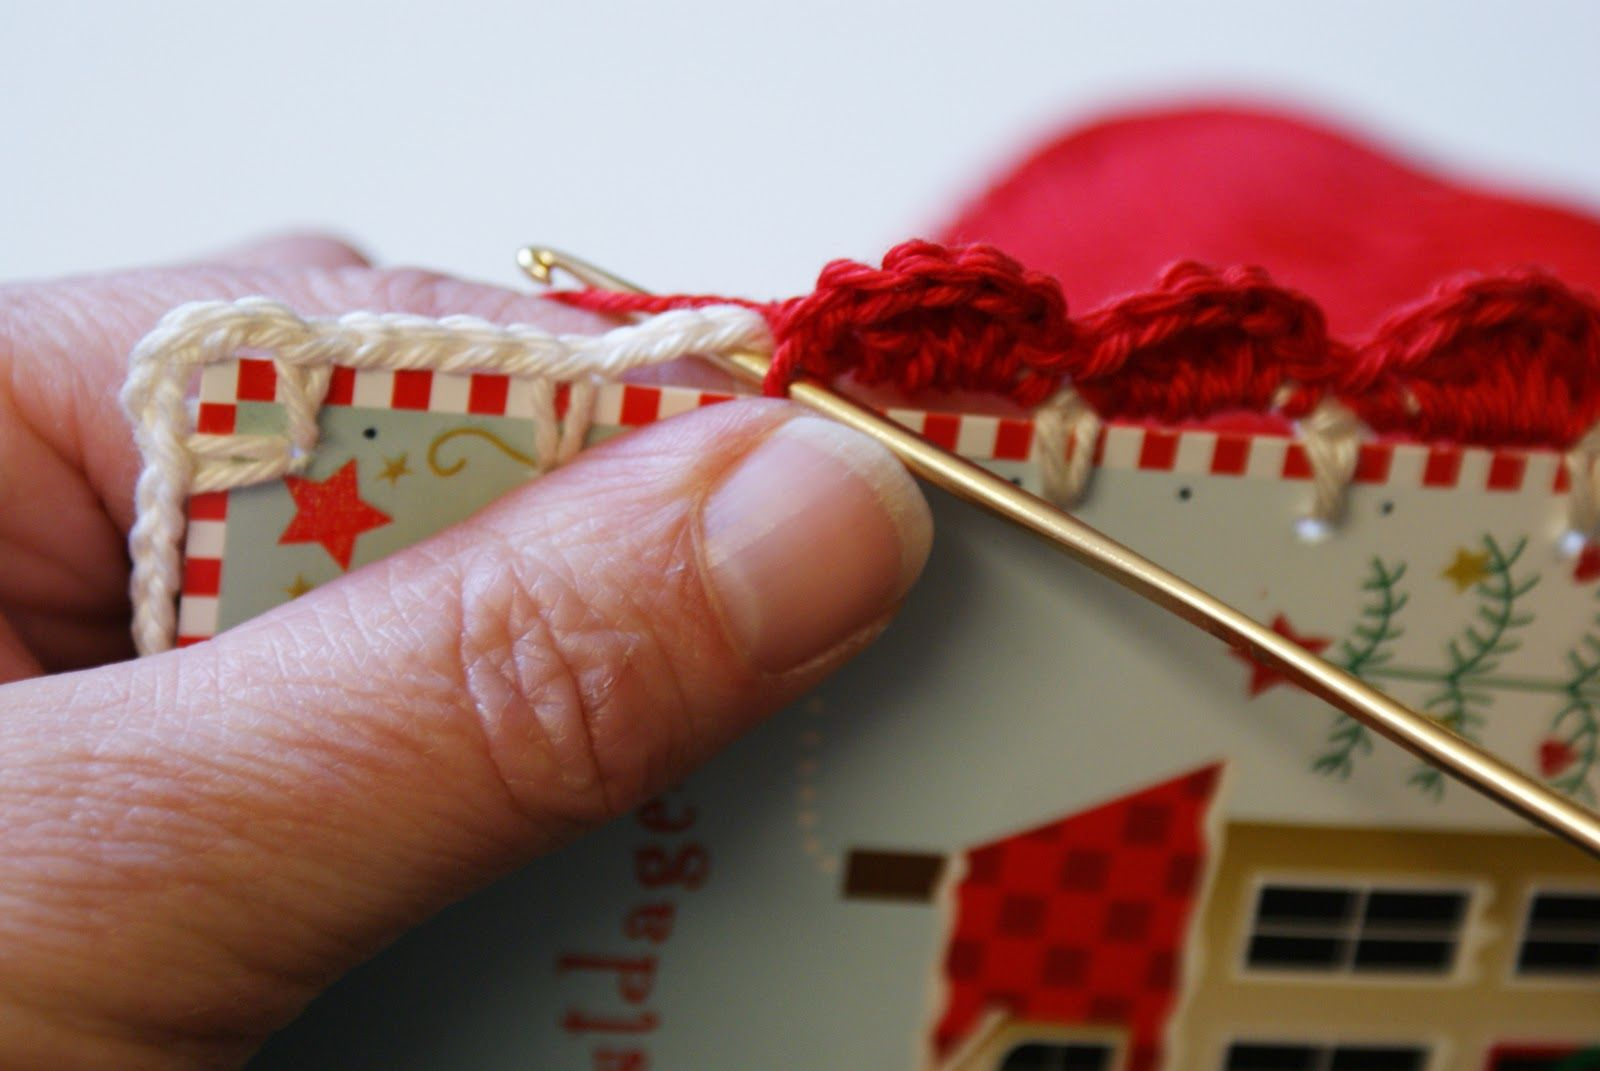 Pin By Andrea Megginson On Crochet Tips How To Crochet Scalloped Edge Crochet Edging Recycle Christmas Cards